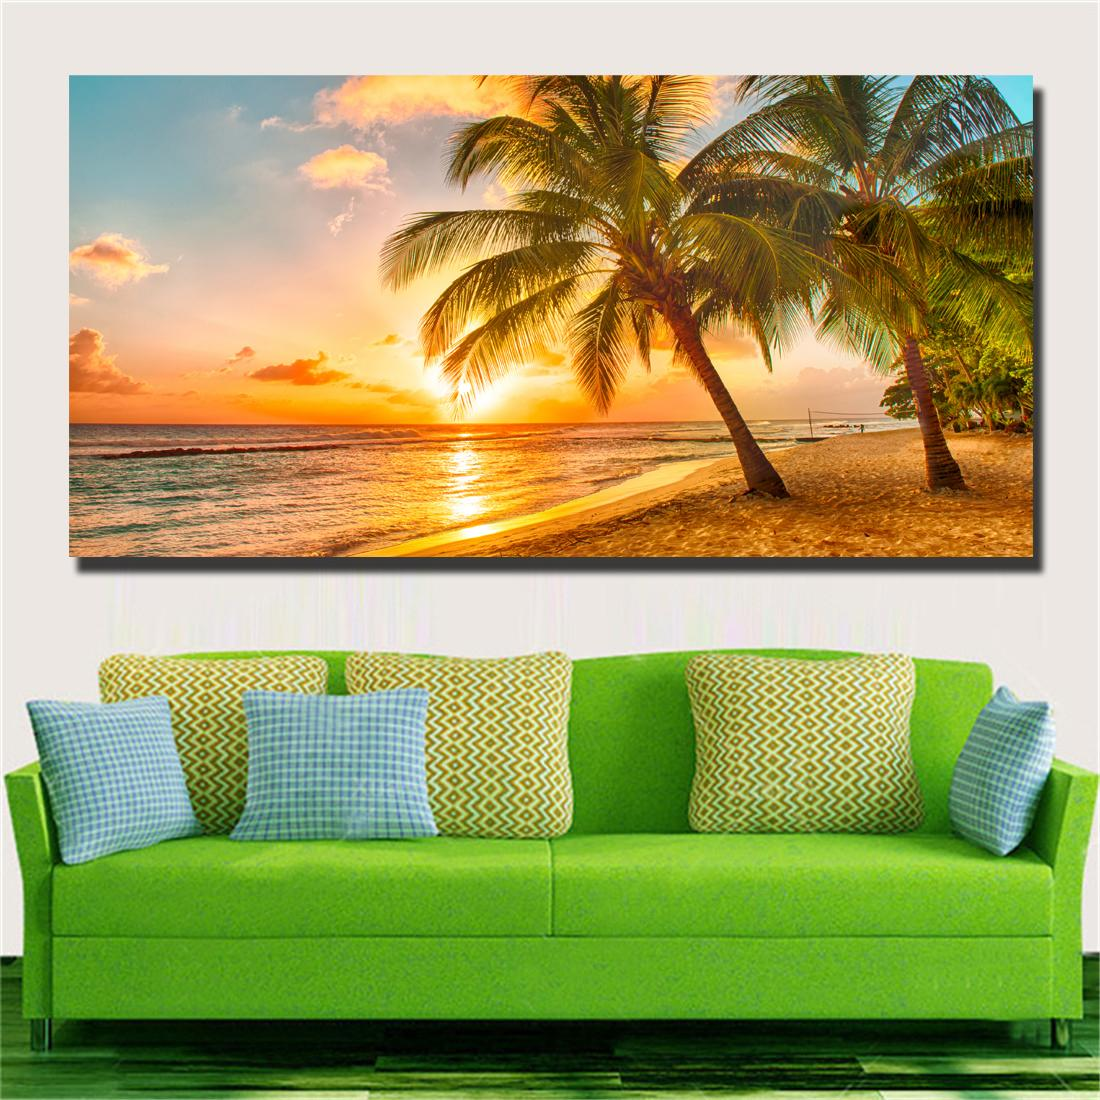 Large art prints Home Decor Canvas Painting Wall Art Beautiful Yellow Beach Wall Pictures for Living Room No Framed #113